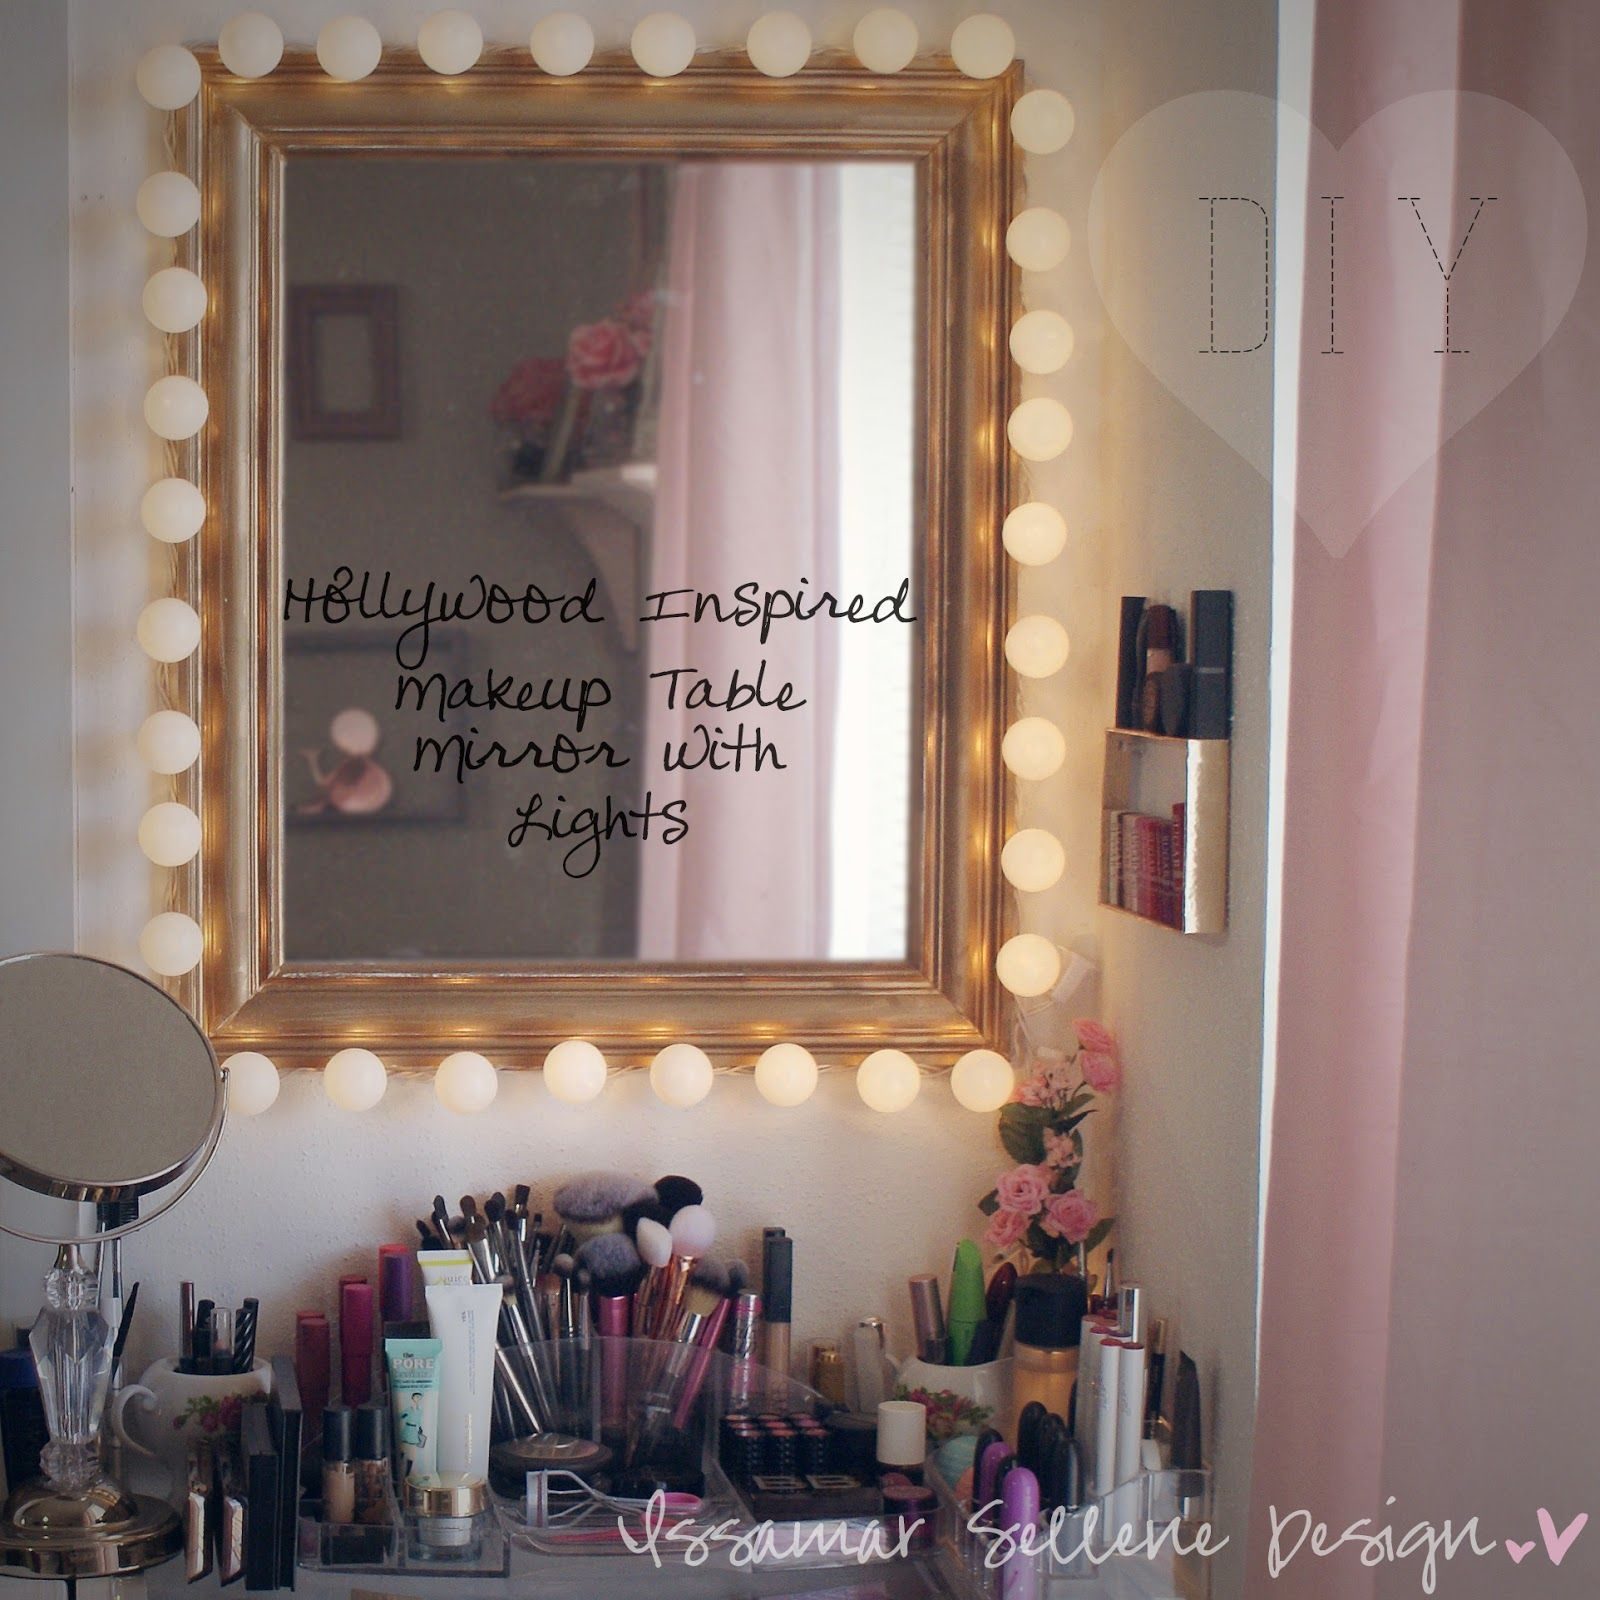 DIY: Hollywood Inspired Makeup Table Mirror Lights   Make Your Own Vanity  Mirror, Itu0027s So Easy And Inexpensive To Do. Use A Framed Mirror, Ping Pong  Balls ...